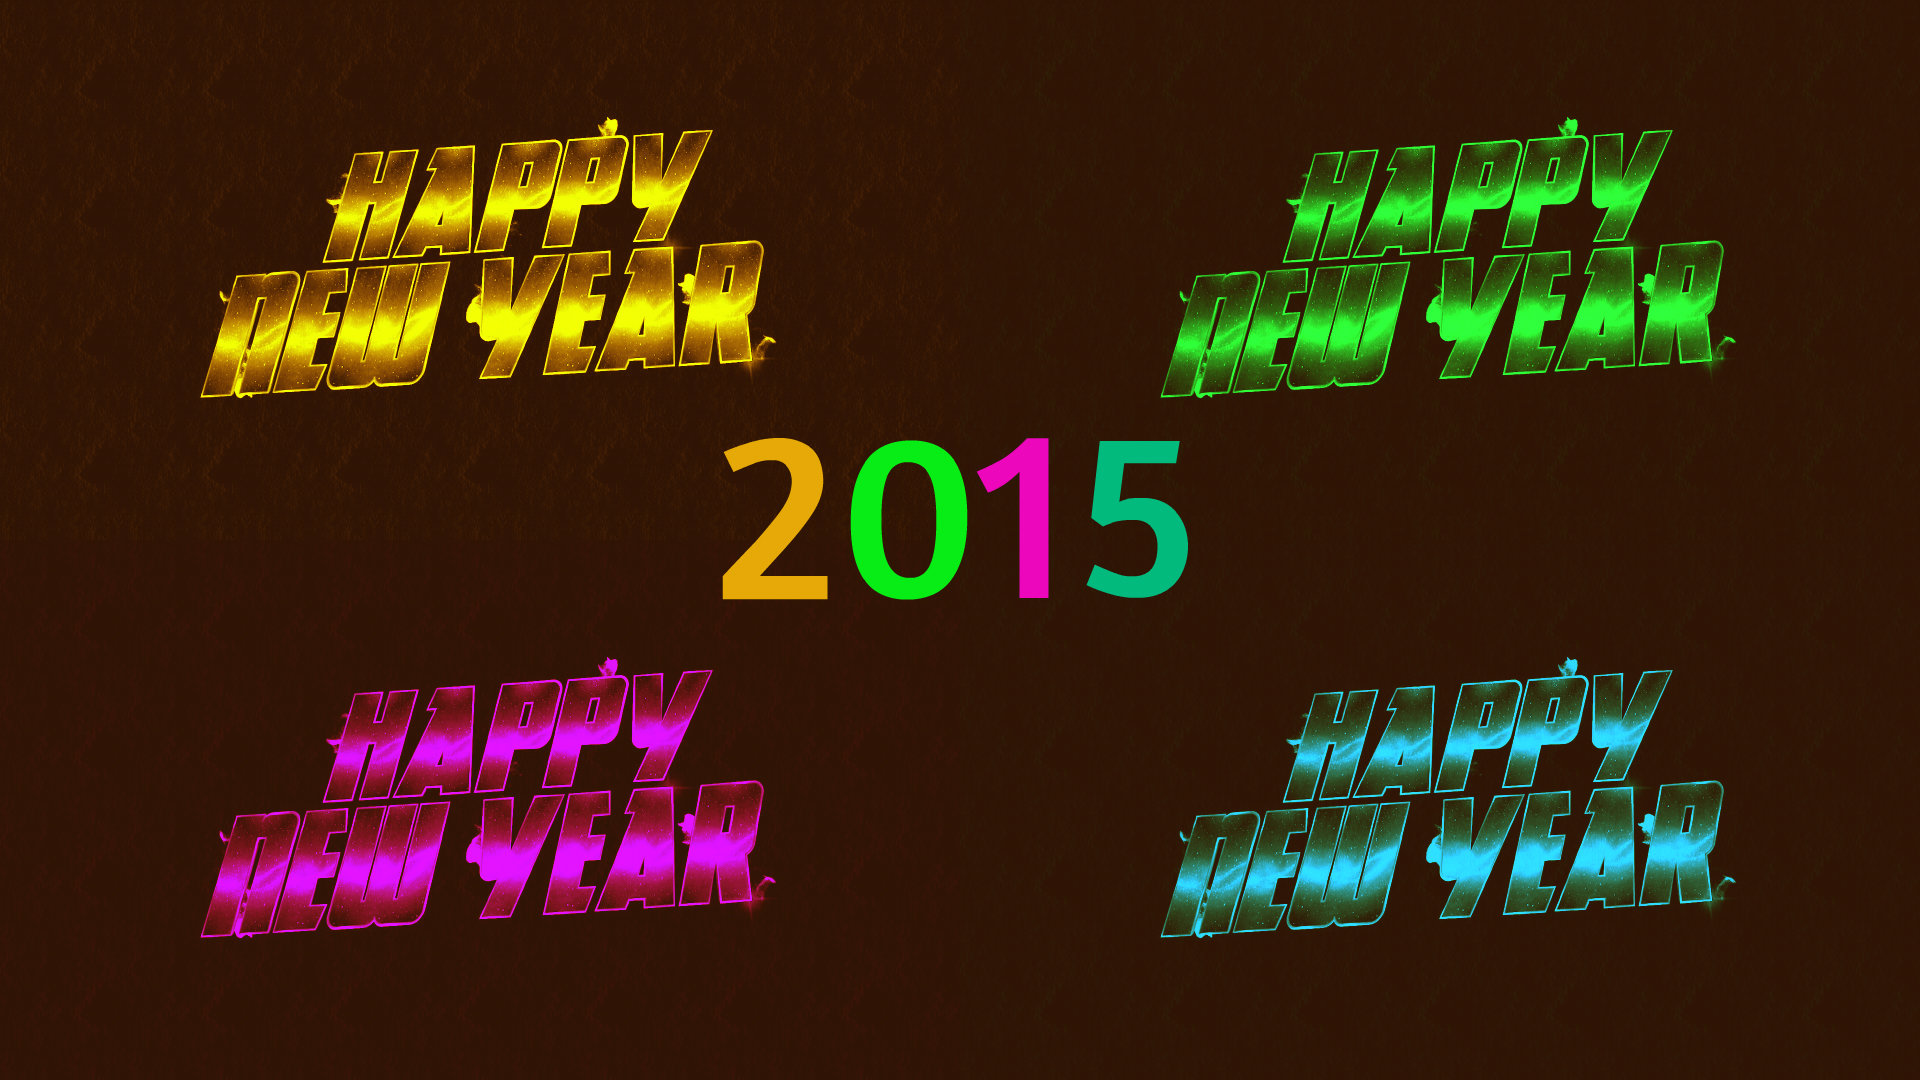 Download 1080p New Year 2015 desktop wallpaper ID:156236 for free